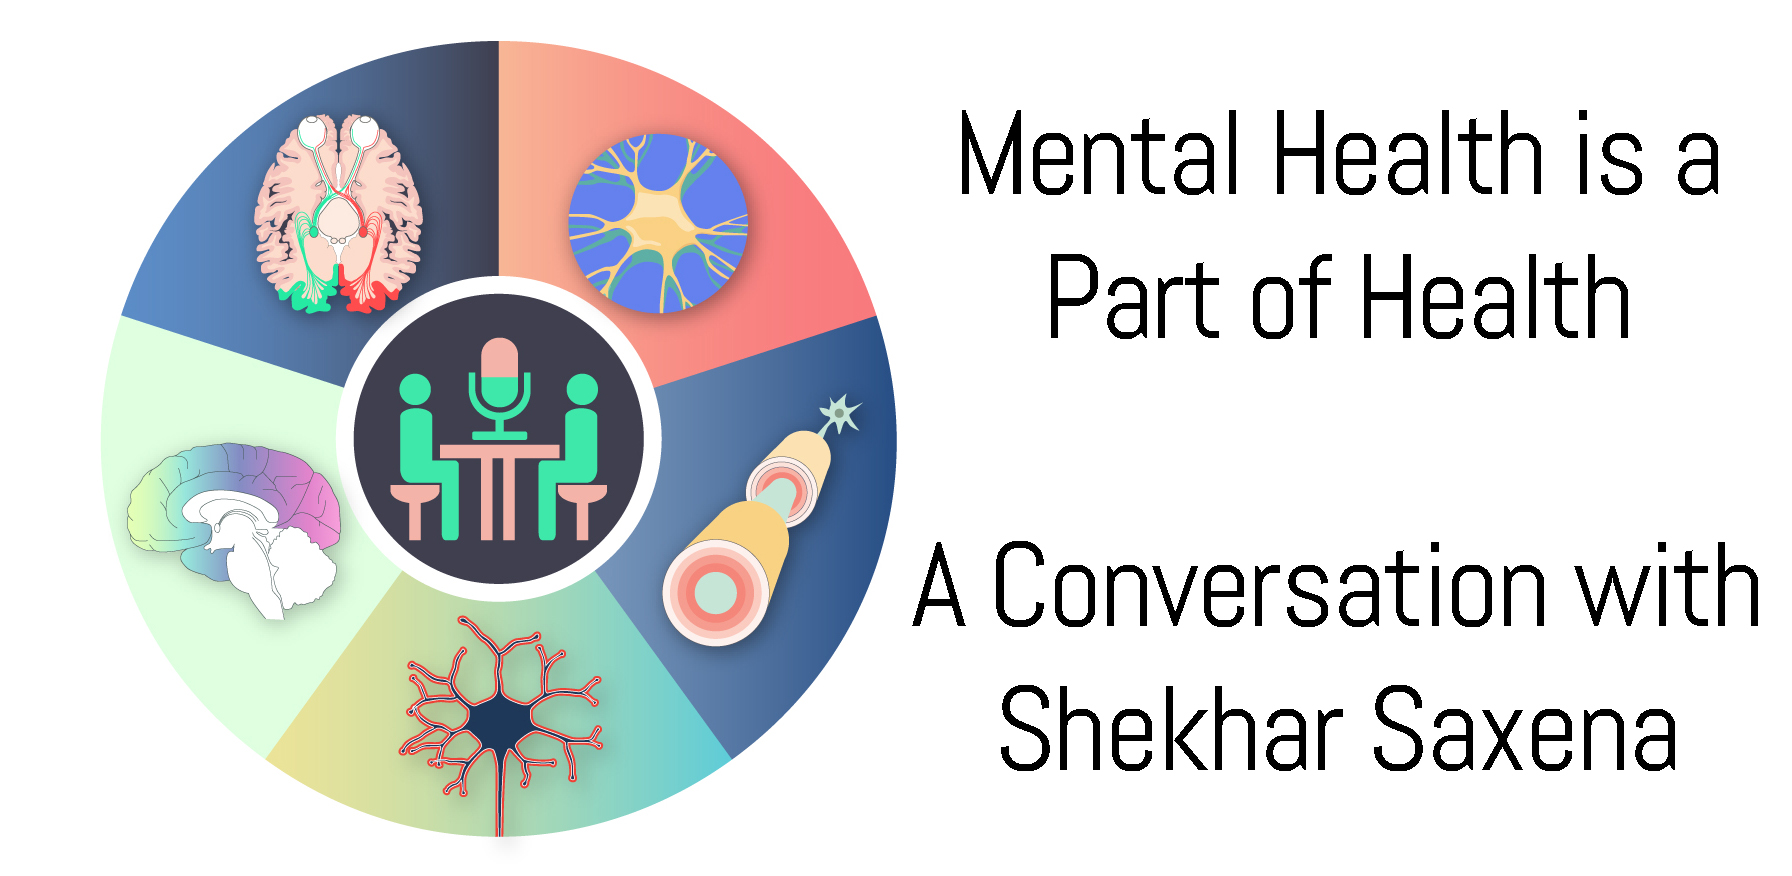 Mental Health is a Part of Health: A Conversation with Shekhar Saxena